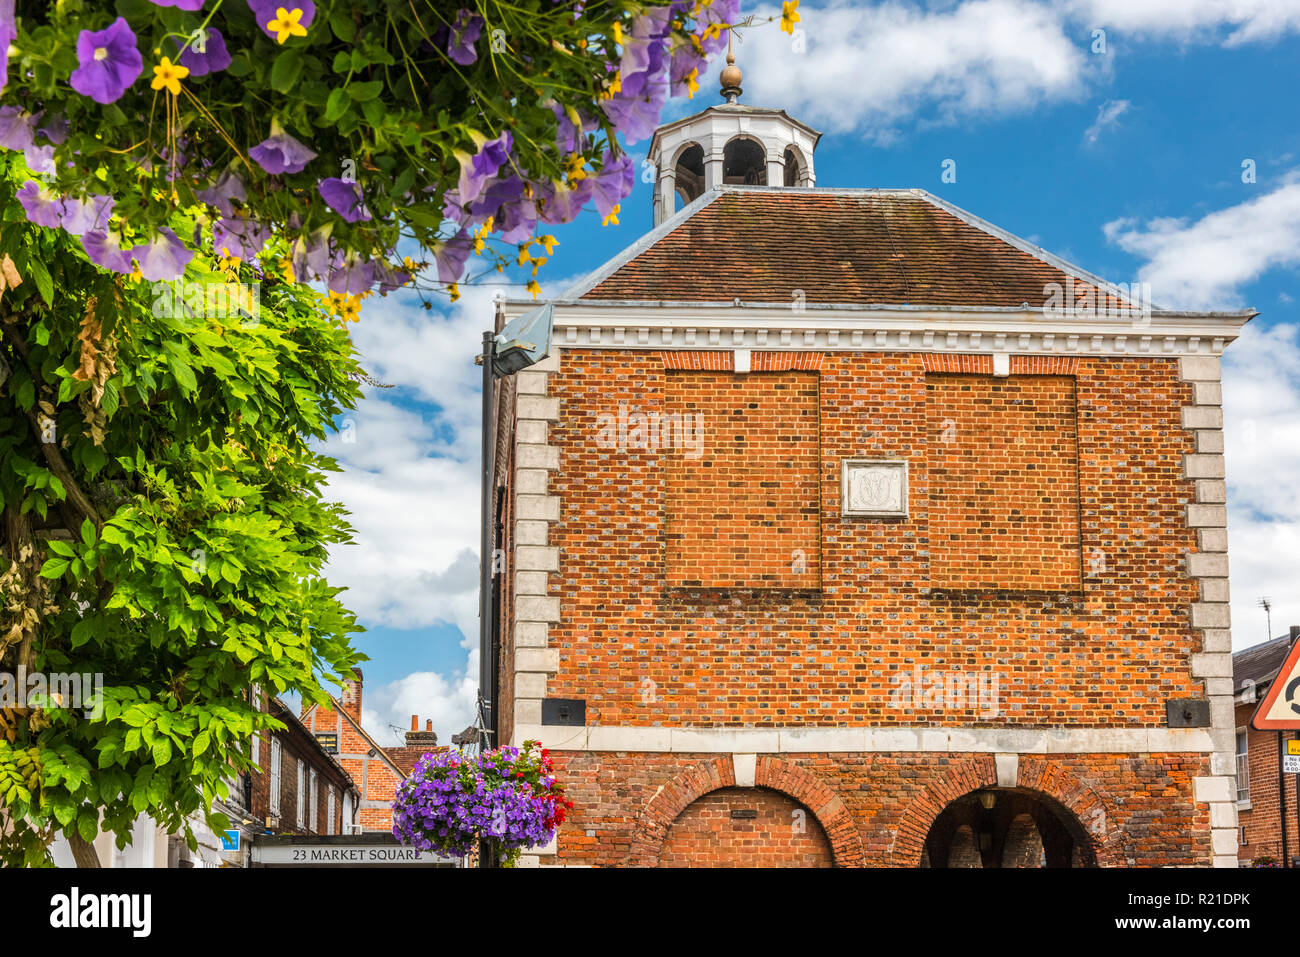 Flowers outside Old Amersham Market Hall, Amersham, Buckinghamshire, England - Stock Image